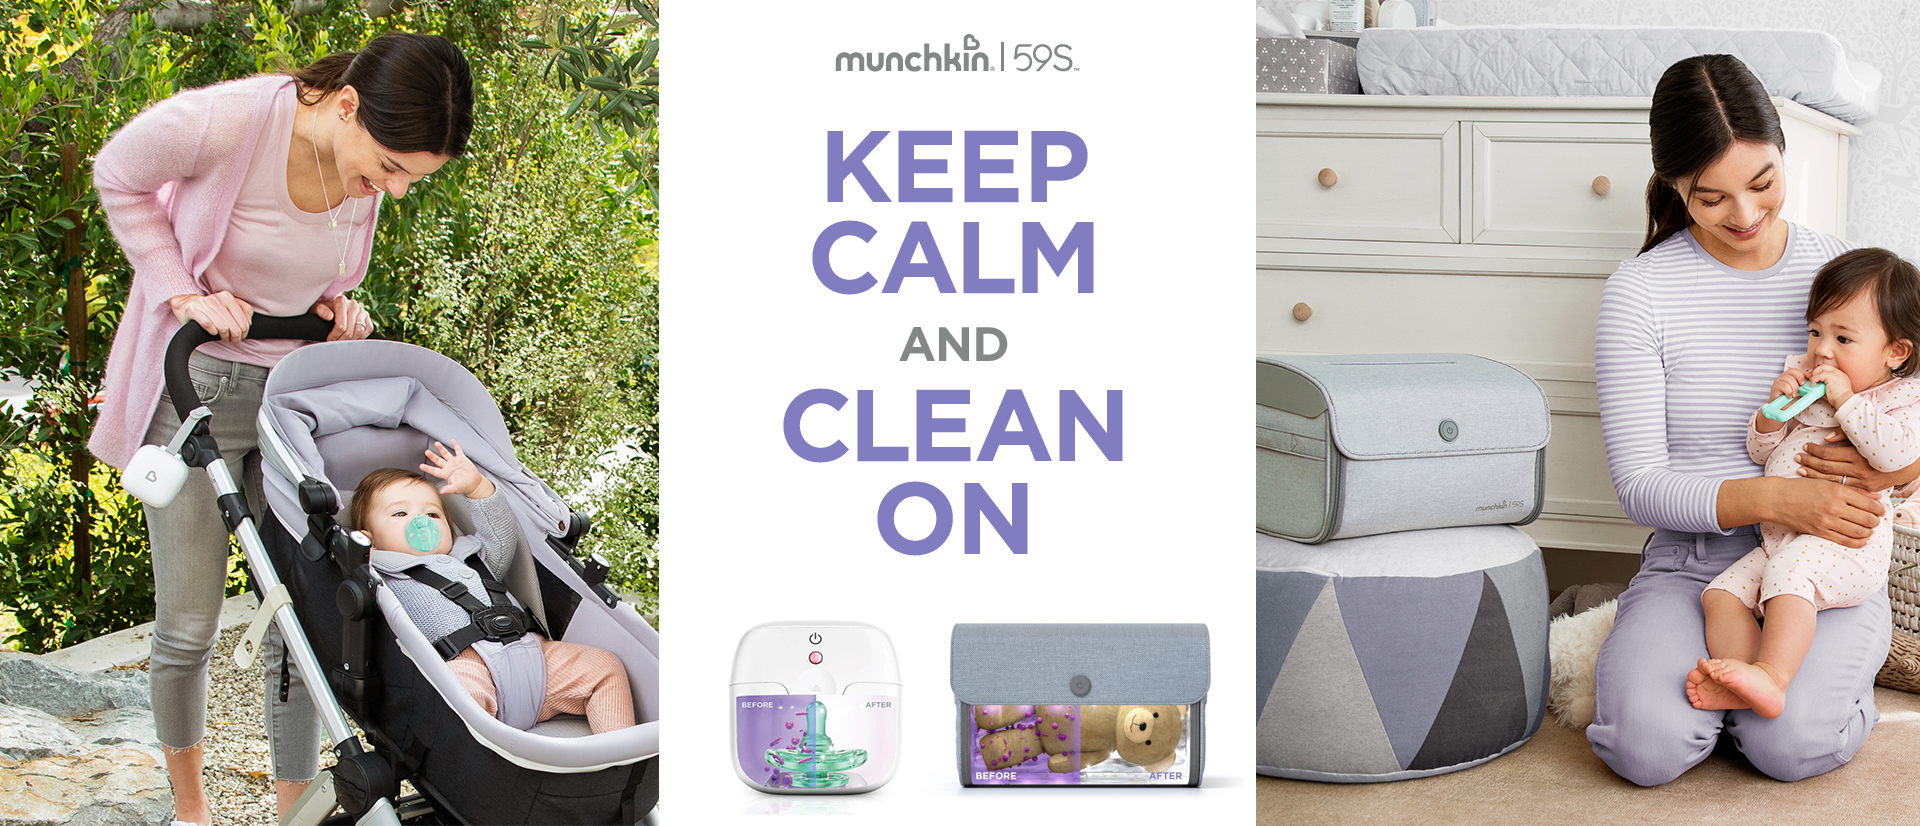 Munchkin 59S   Keep Calm and Clean On